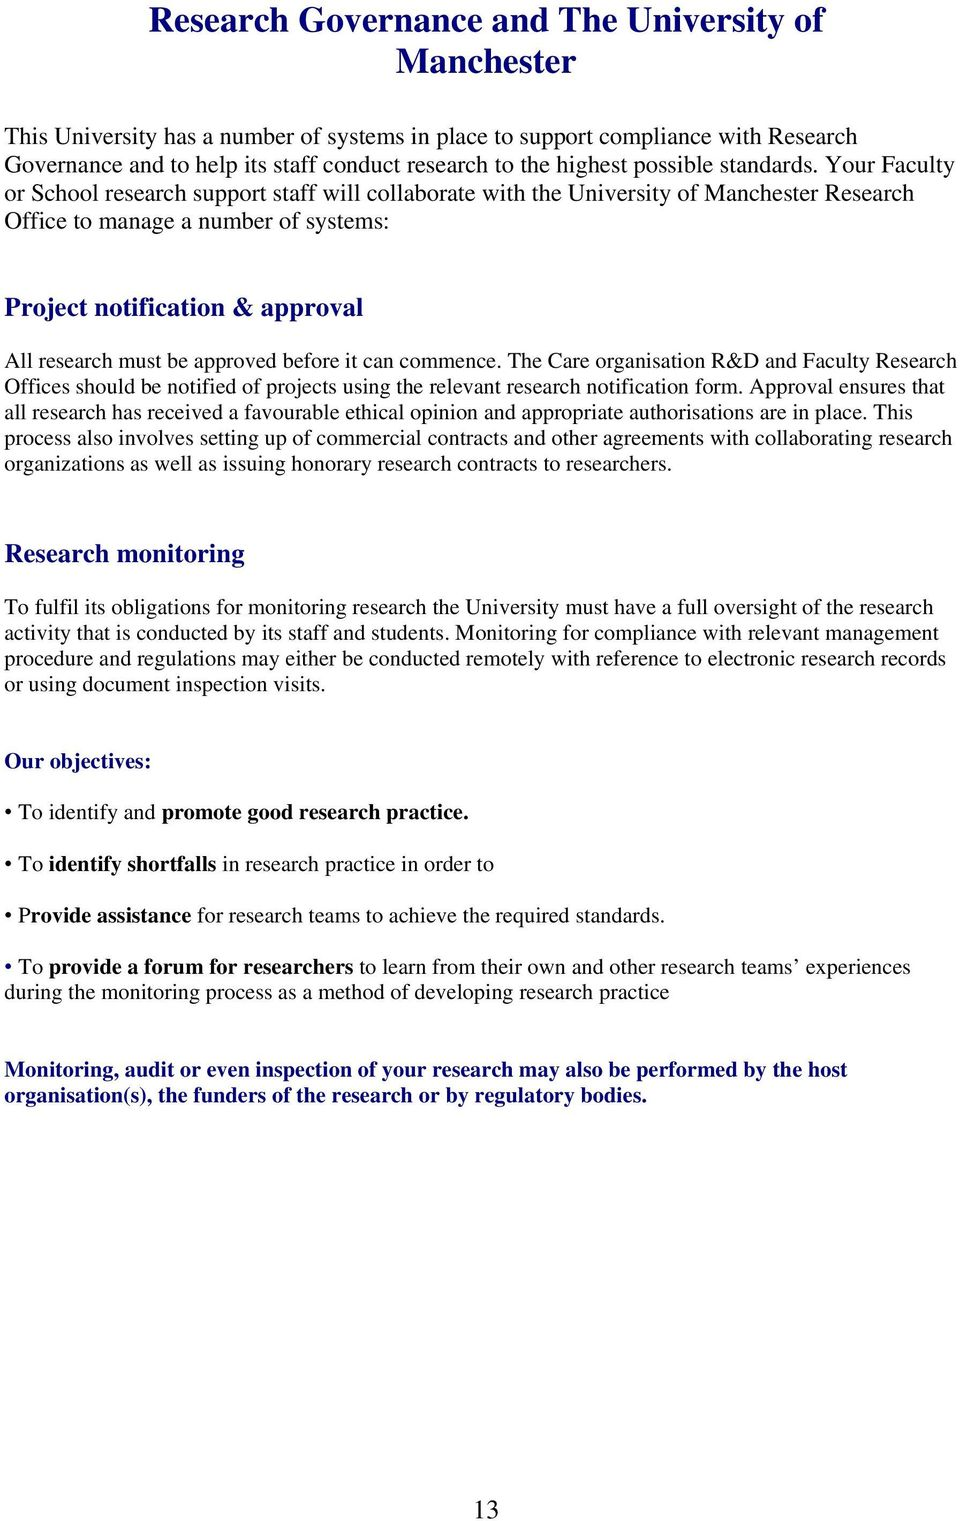 Your Faculty or School research support staff will collaborate with the University of Manchester Research Office to manage a number of systems: Project notification & approval All research must be